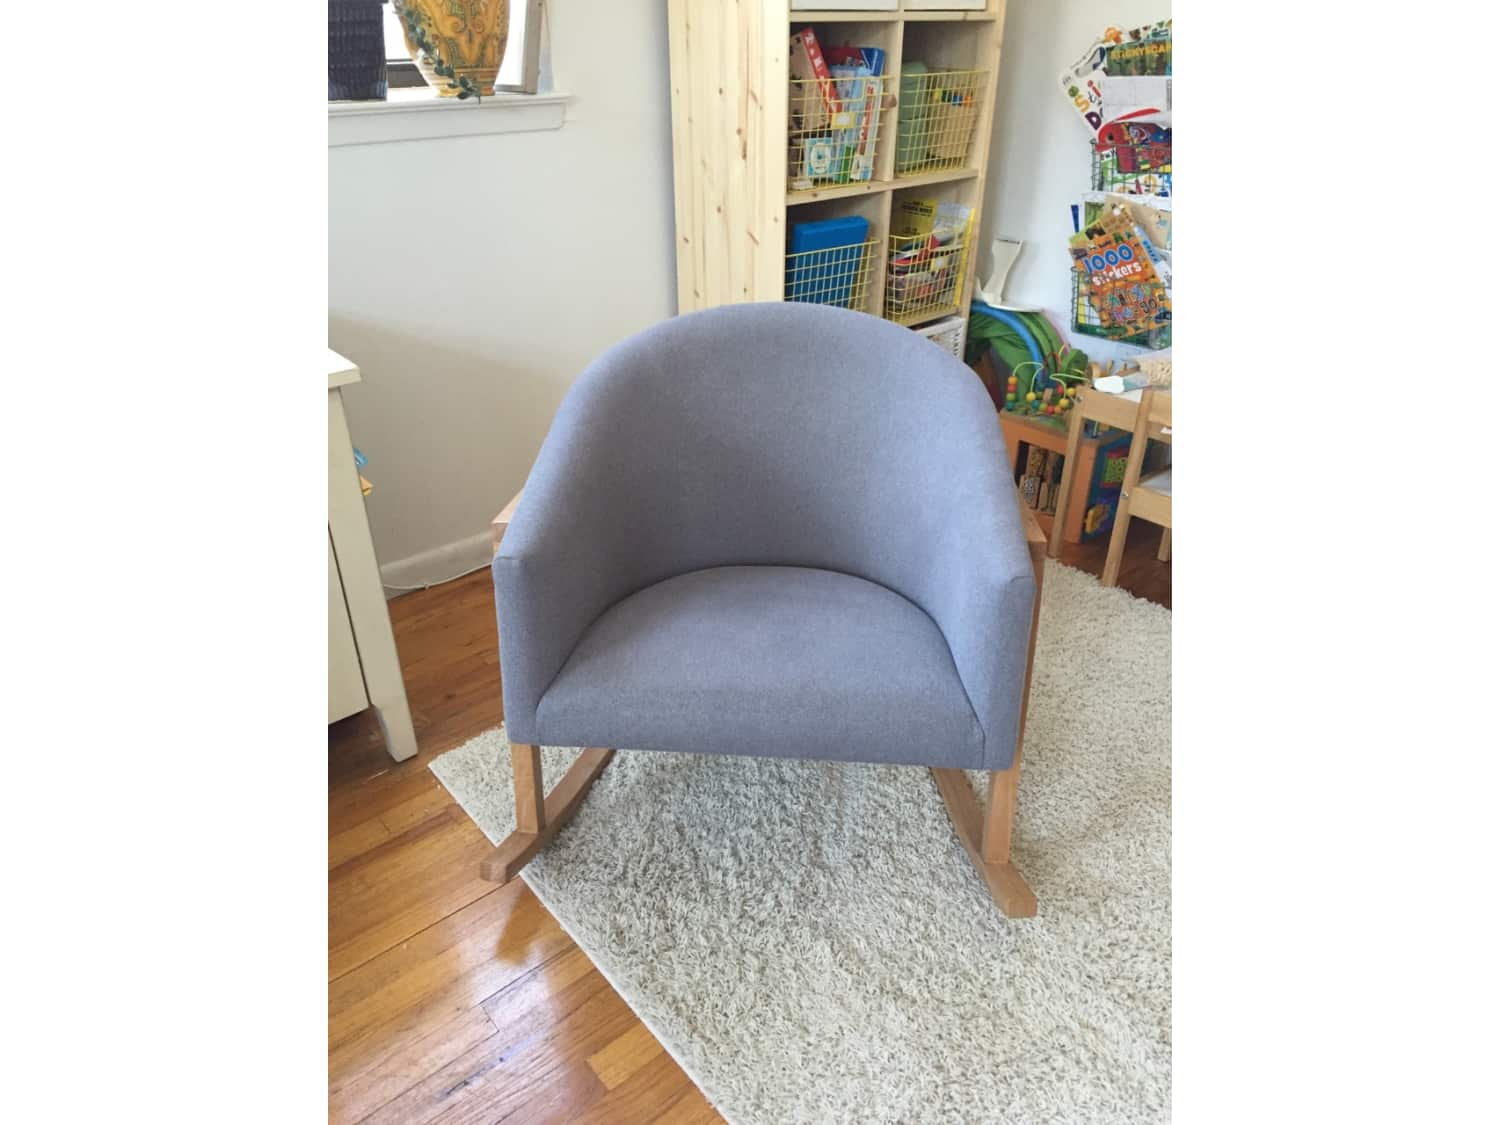 Marvelous West Elm Ryder Rocking Chair Perfect Condition Apartment Inzonedesignstudio Interior Chair Design Inzonedesignstudiocom